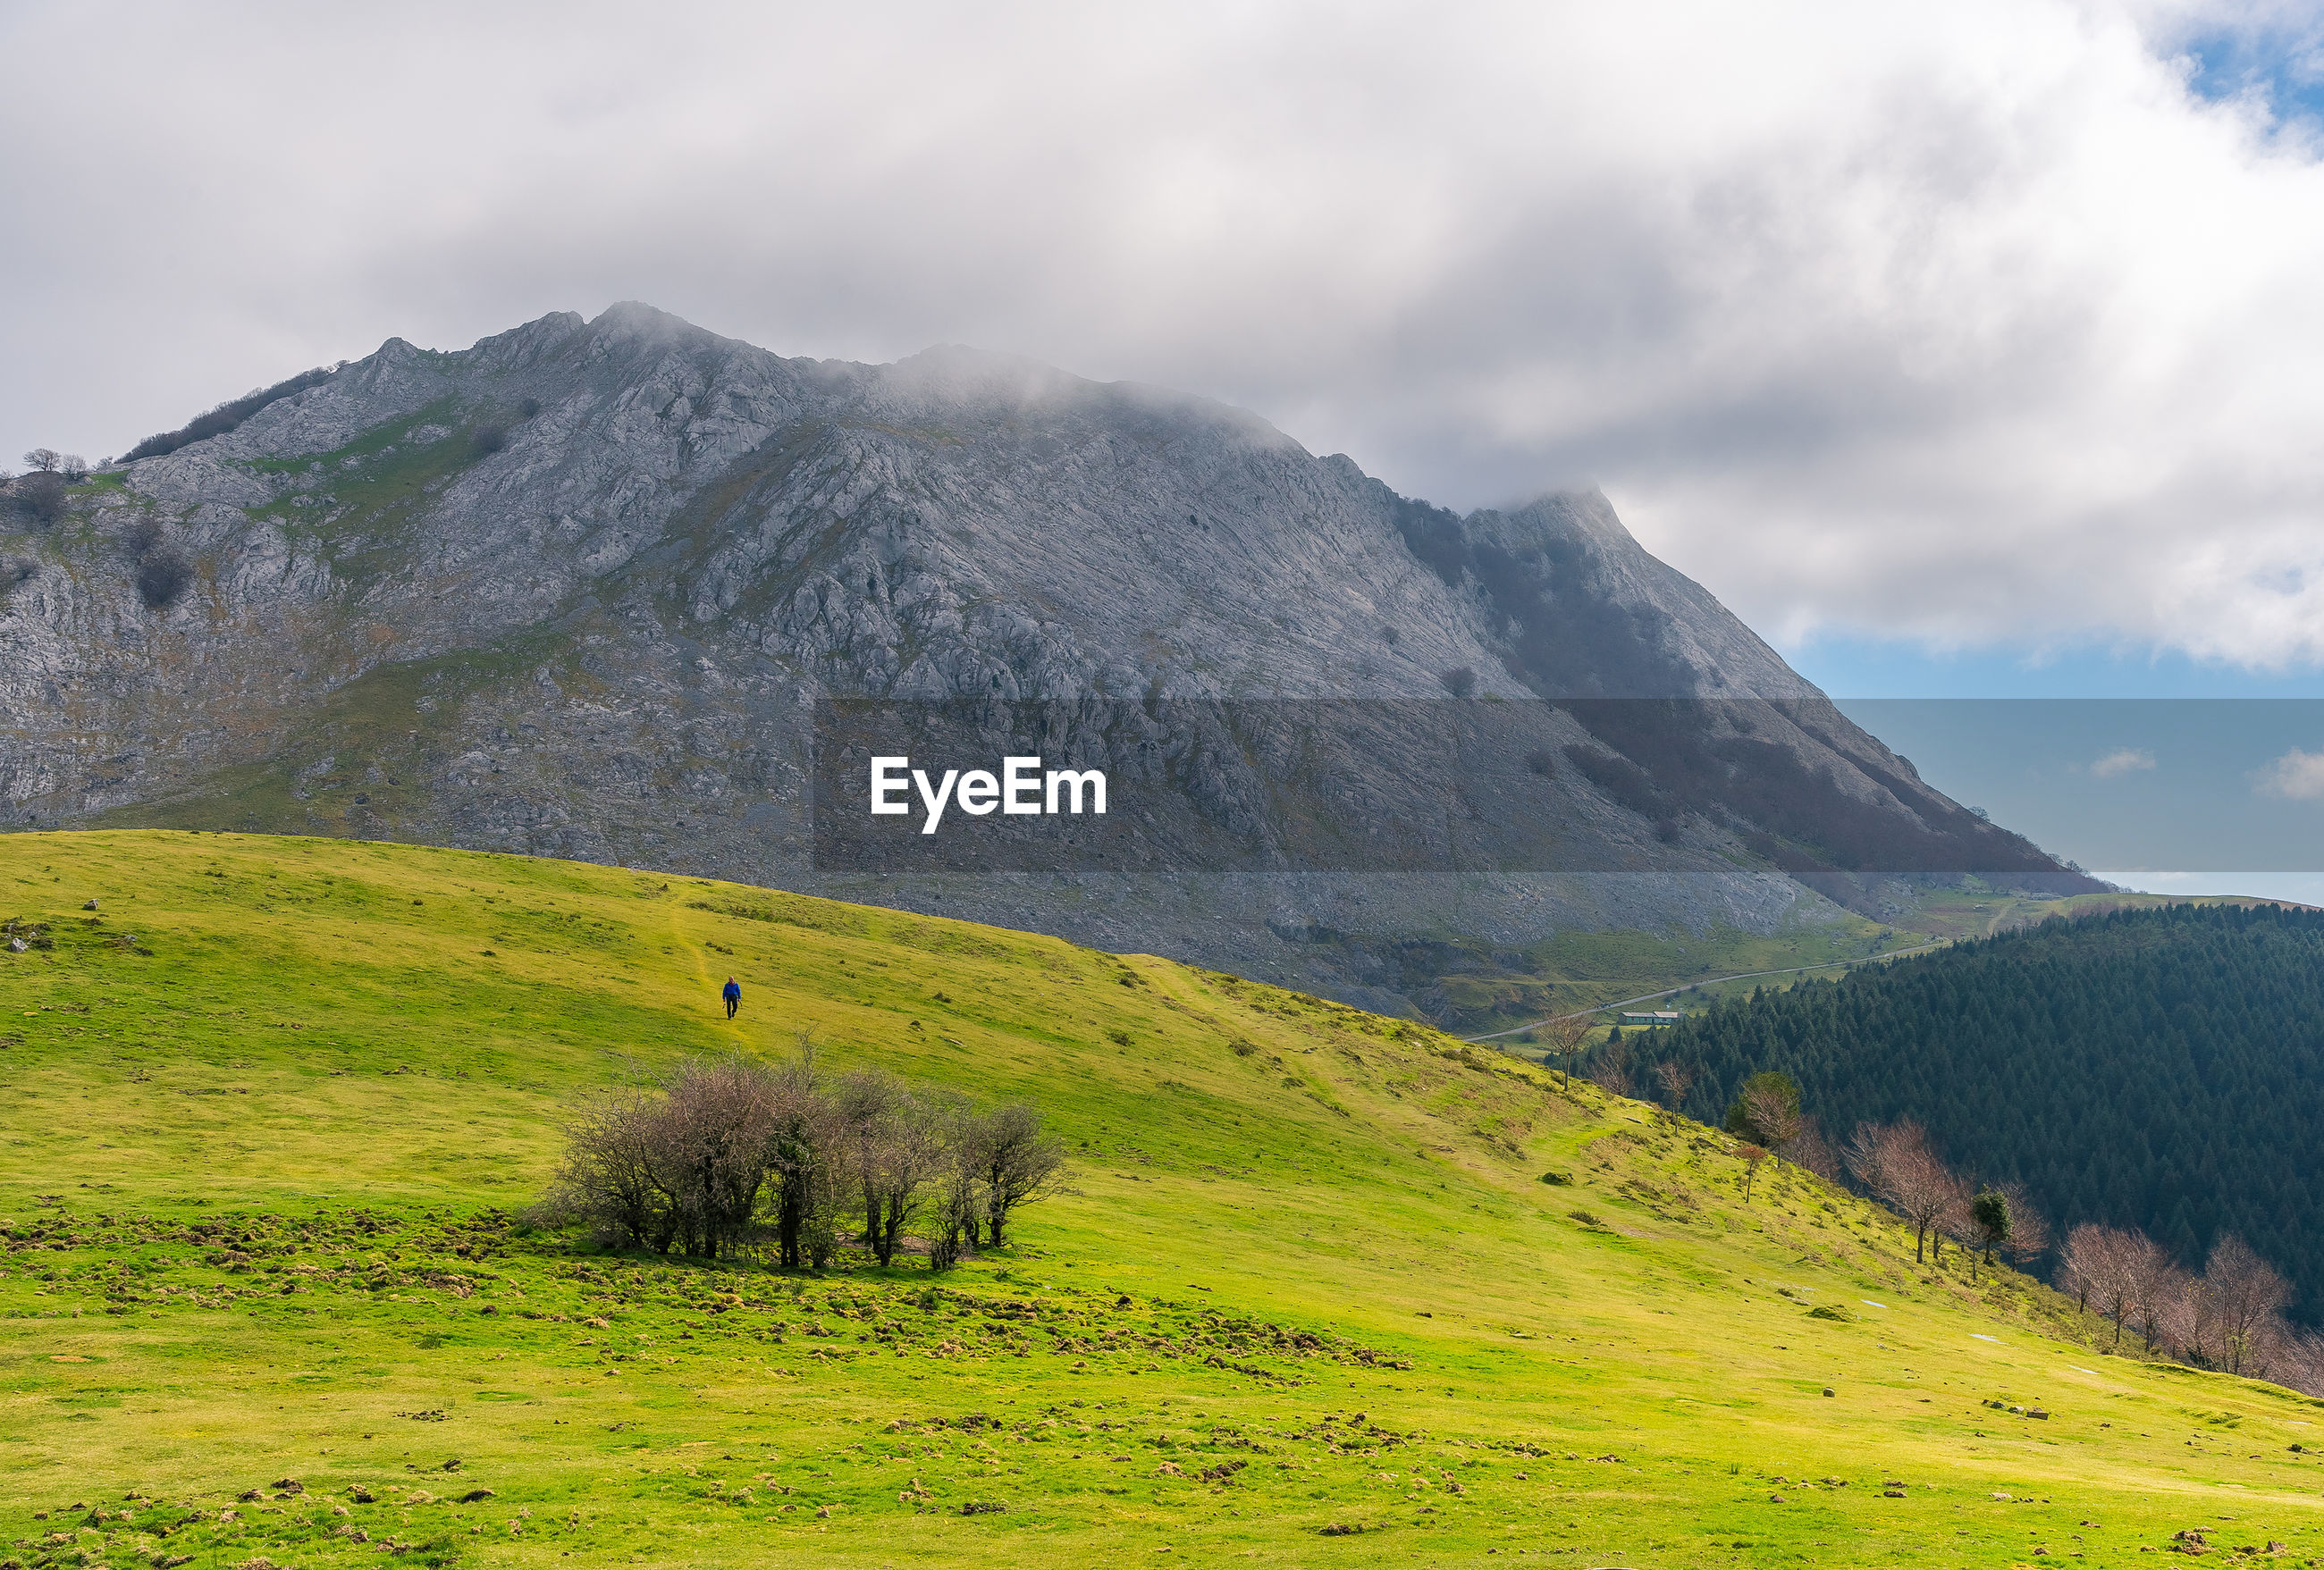 VIEW OF GREEN LANDSCAPE WITH MOUNTAIN RANGE